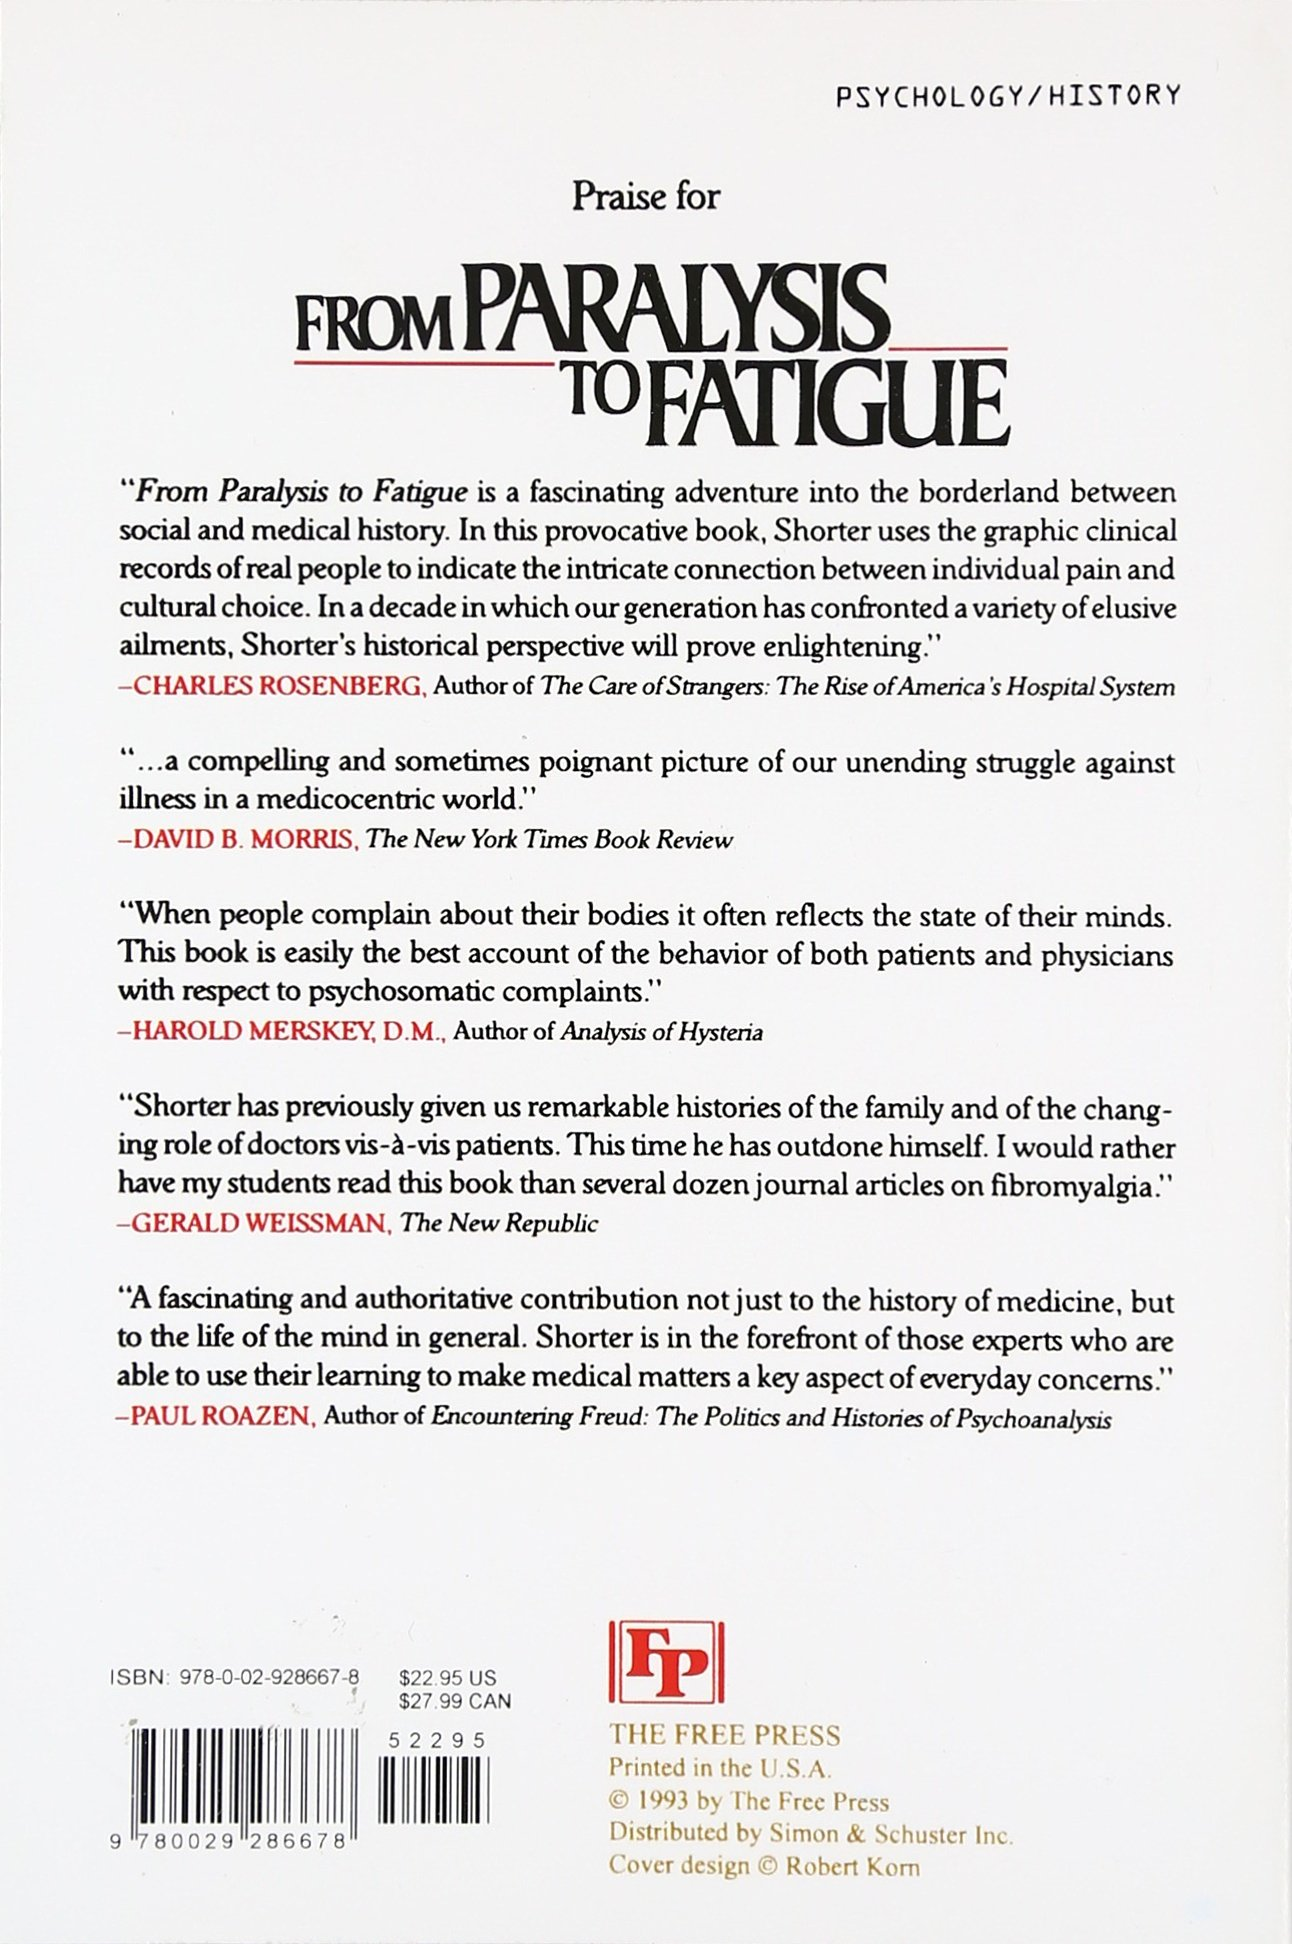 From Paralysis to Fatigue: A History of Psychosomatic